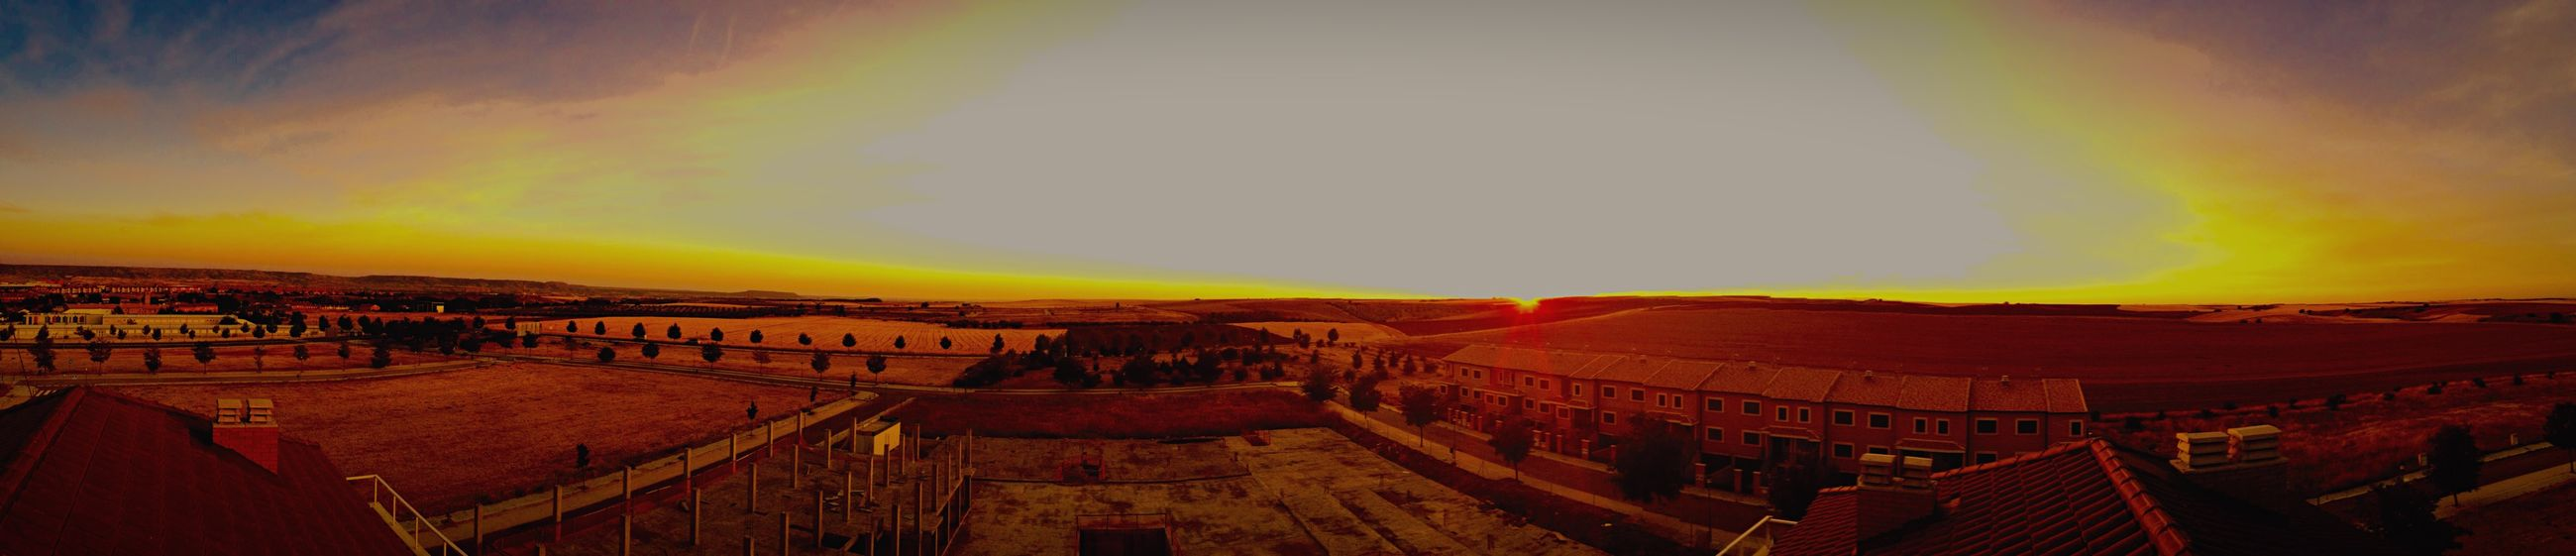 Sun Beautiful Afternoon Atardecer Contry Livin Pueblo Construction Photography SPAIN